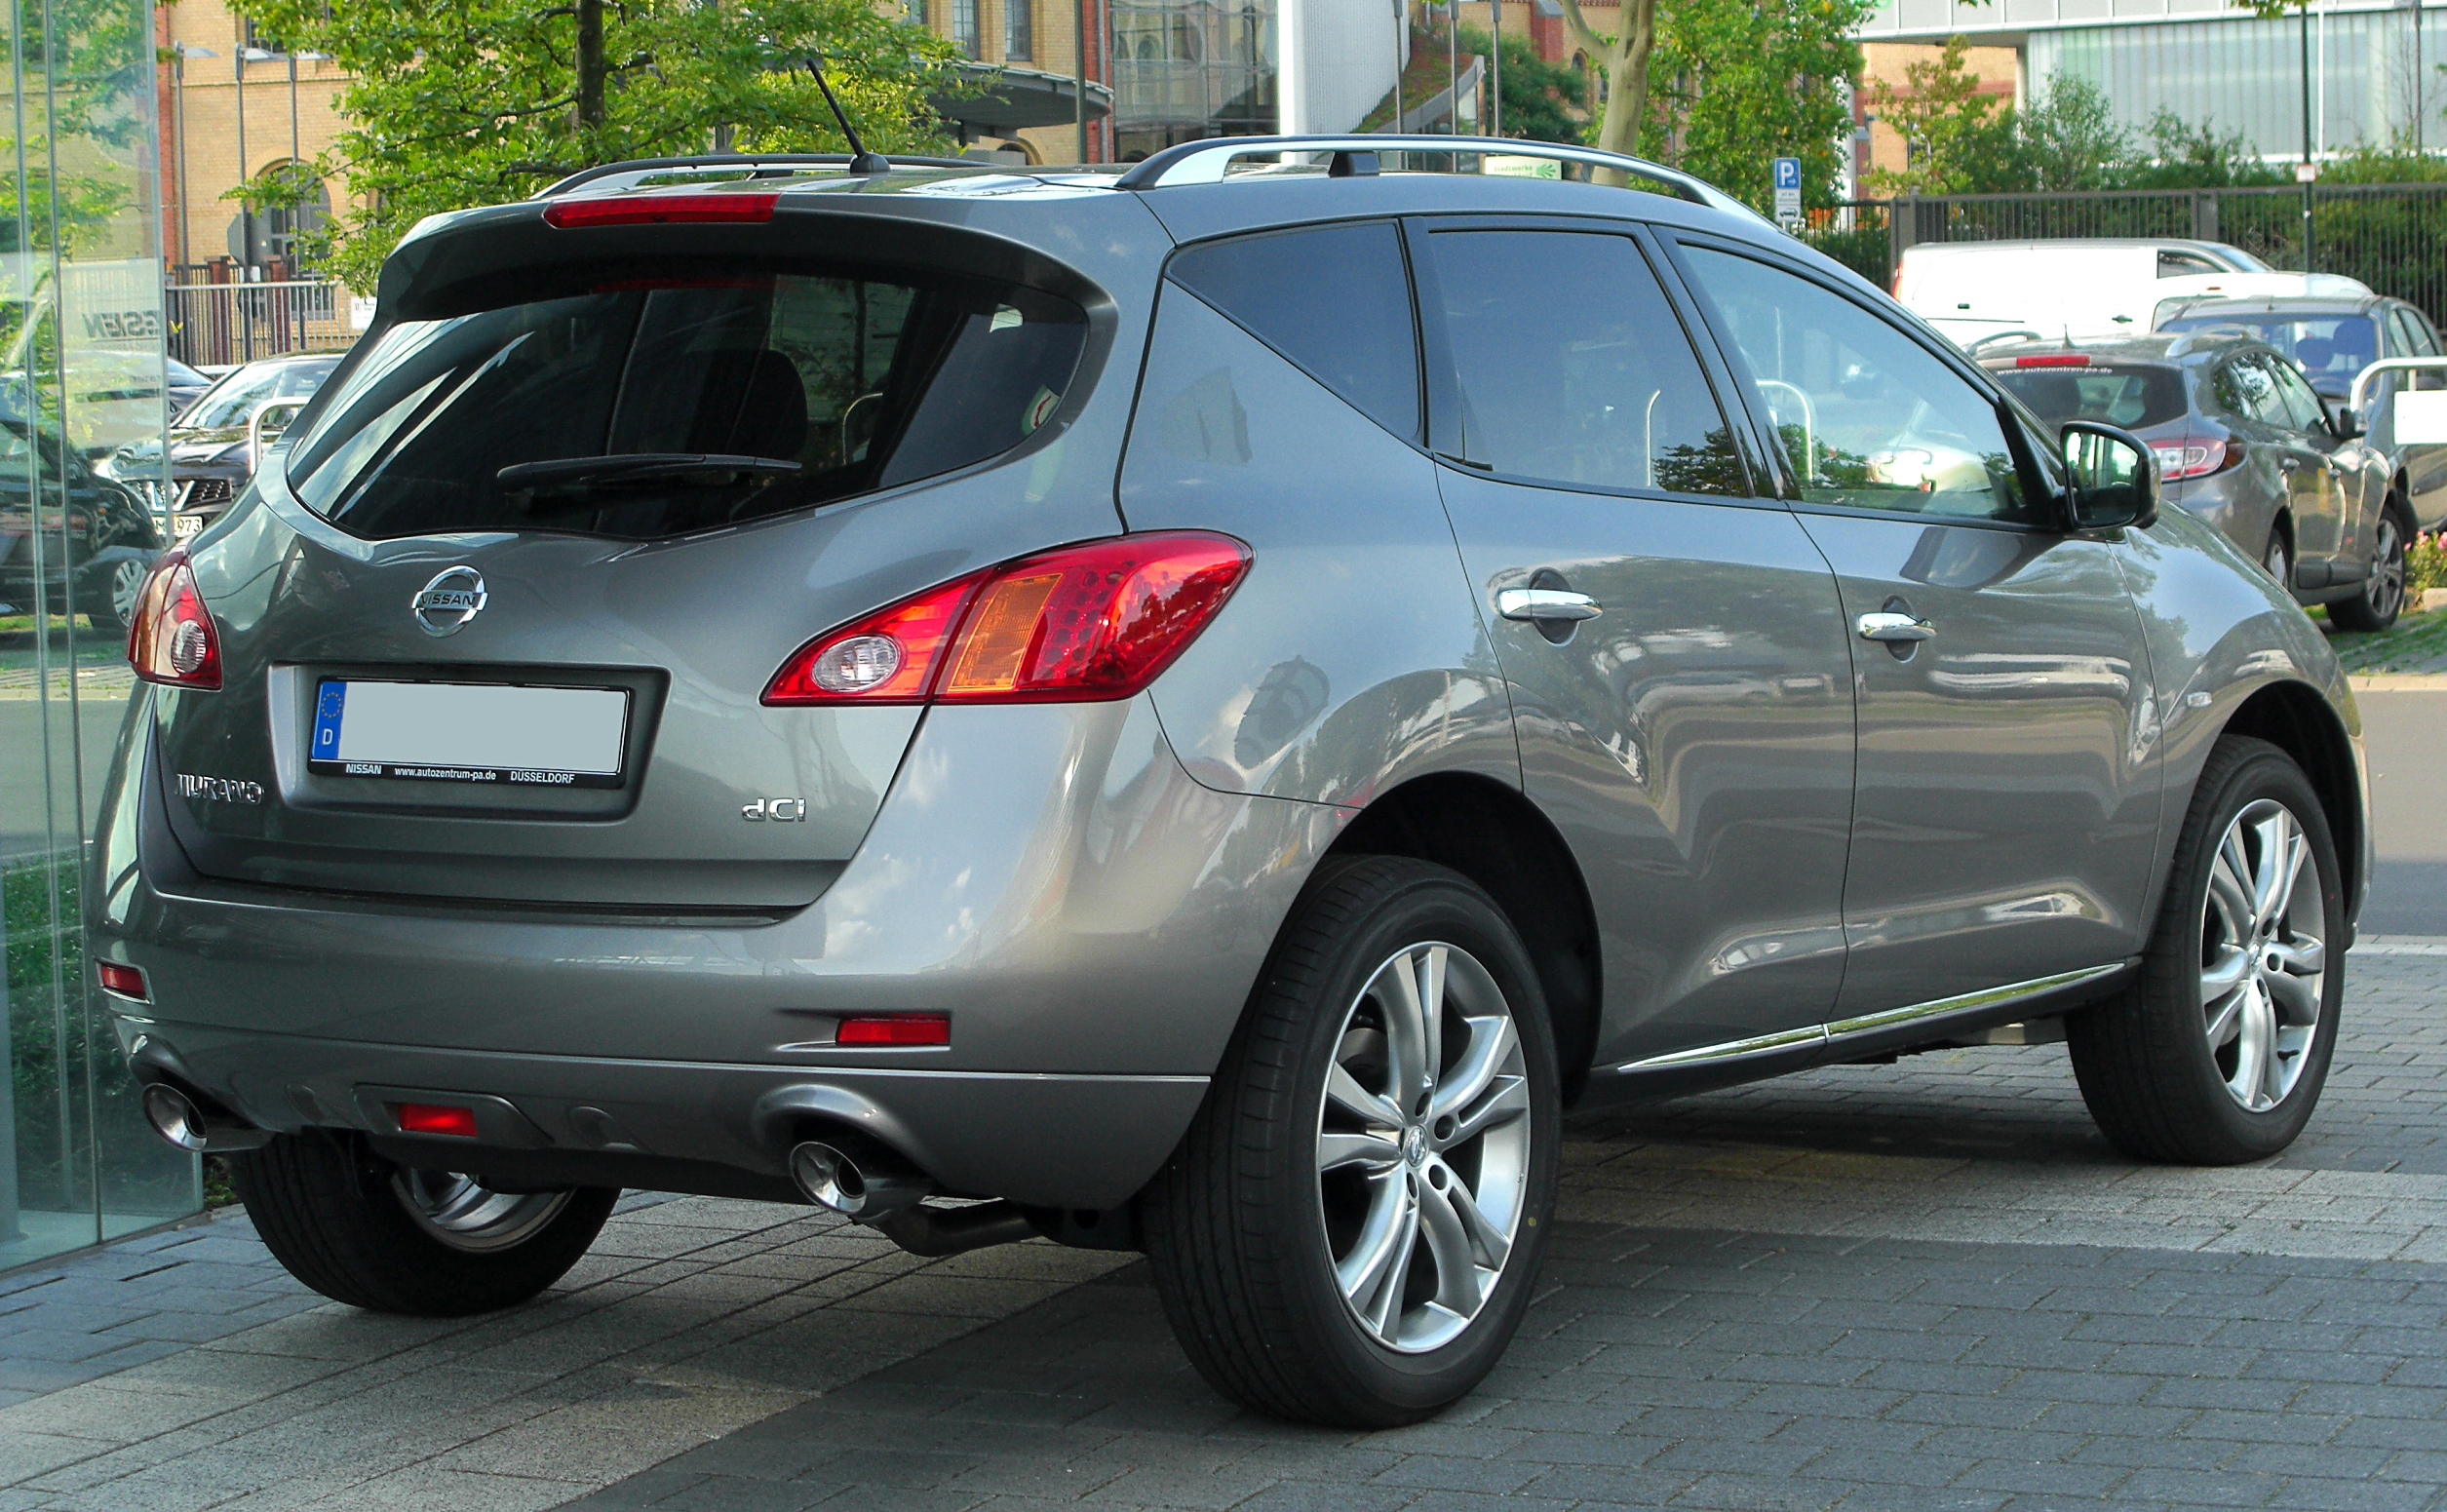 datei nissan murano 2 5 dci z51 facelift rear wikipedia. Black Bedroom Furniture Sets. Home Design Ideas